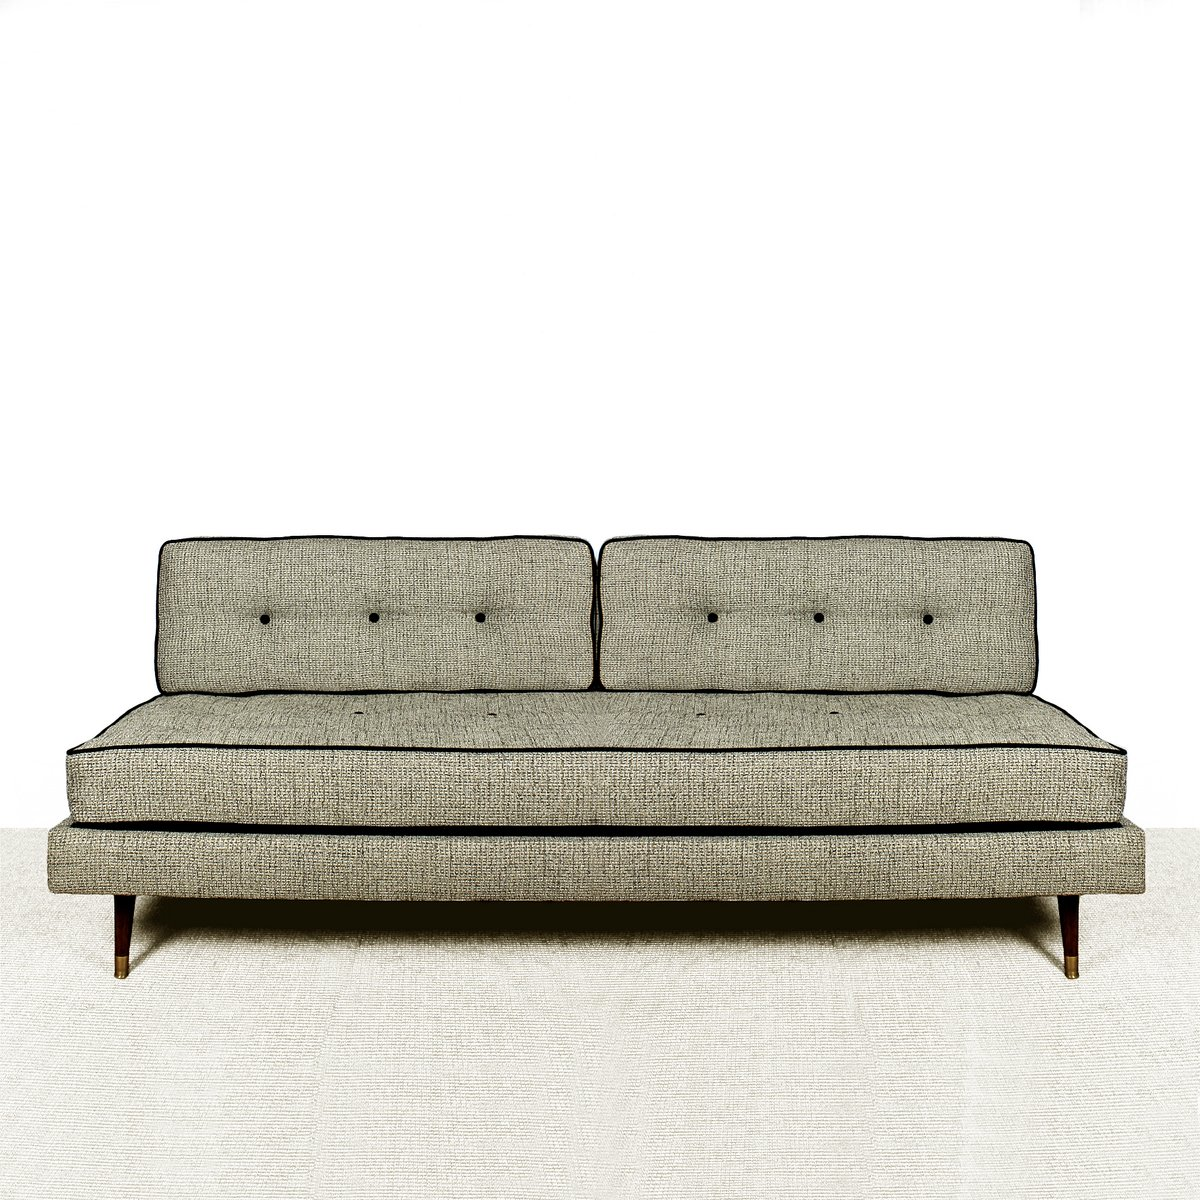 Large mahogany sofa 1950s for sale at pamono for Wide couches for sale